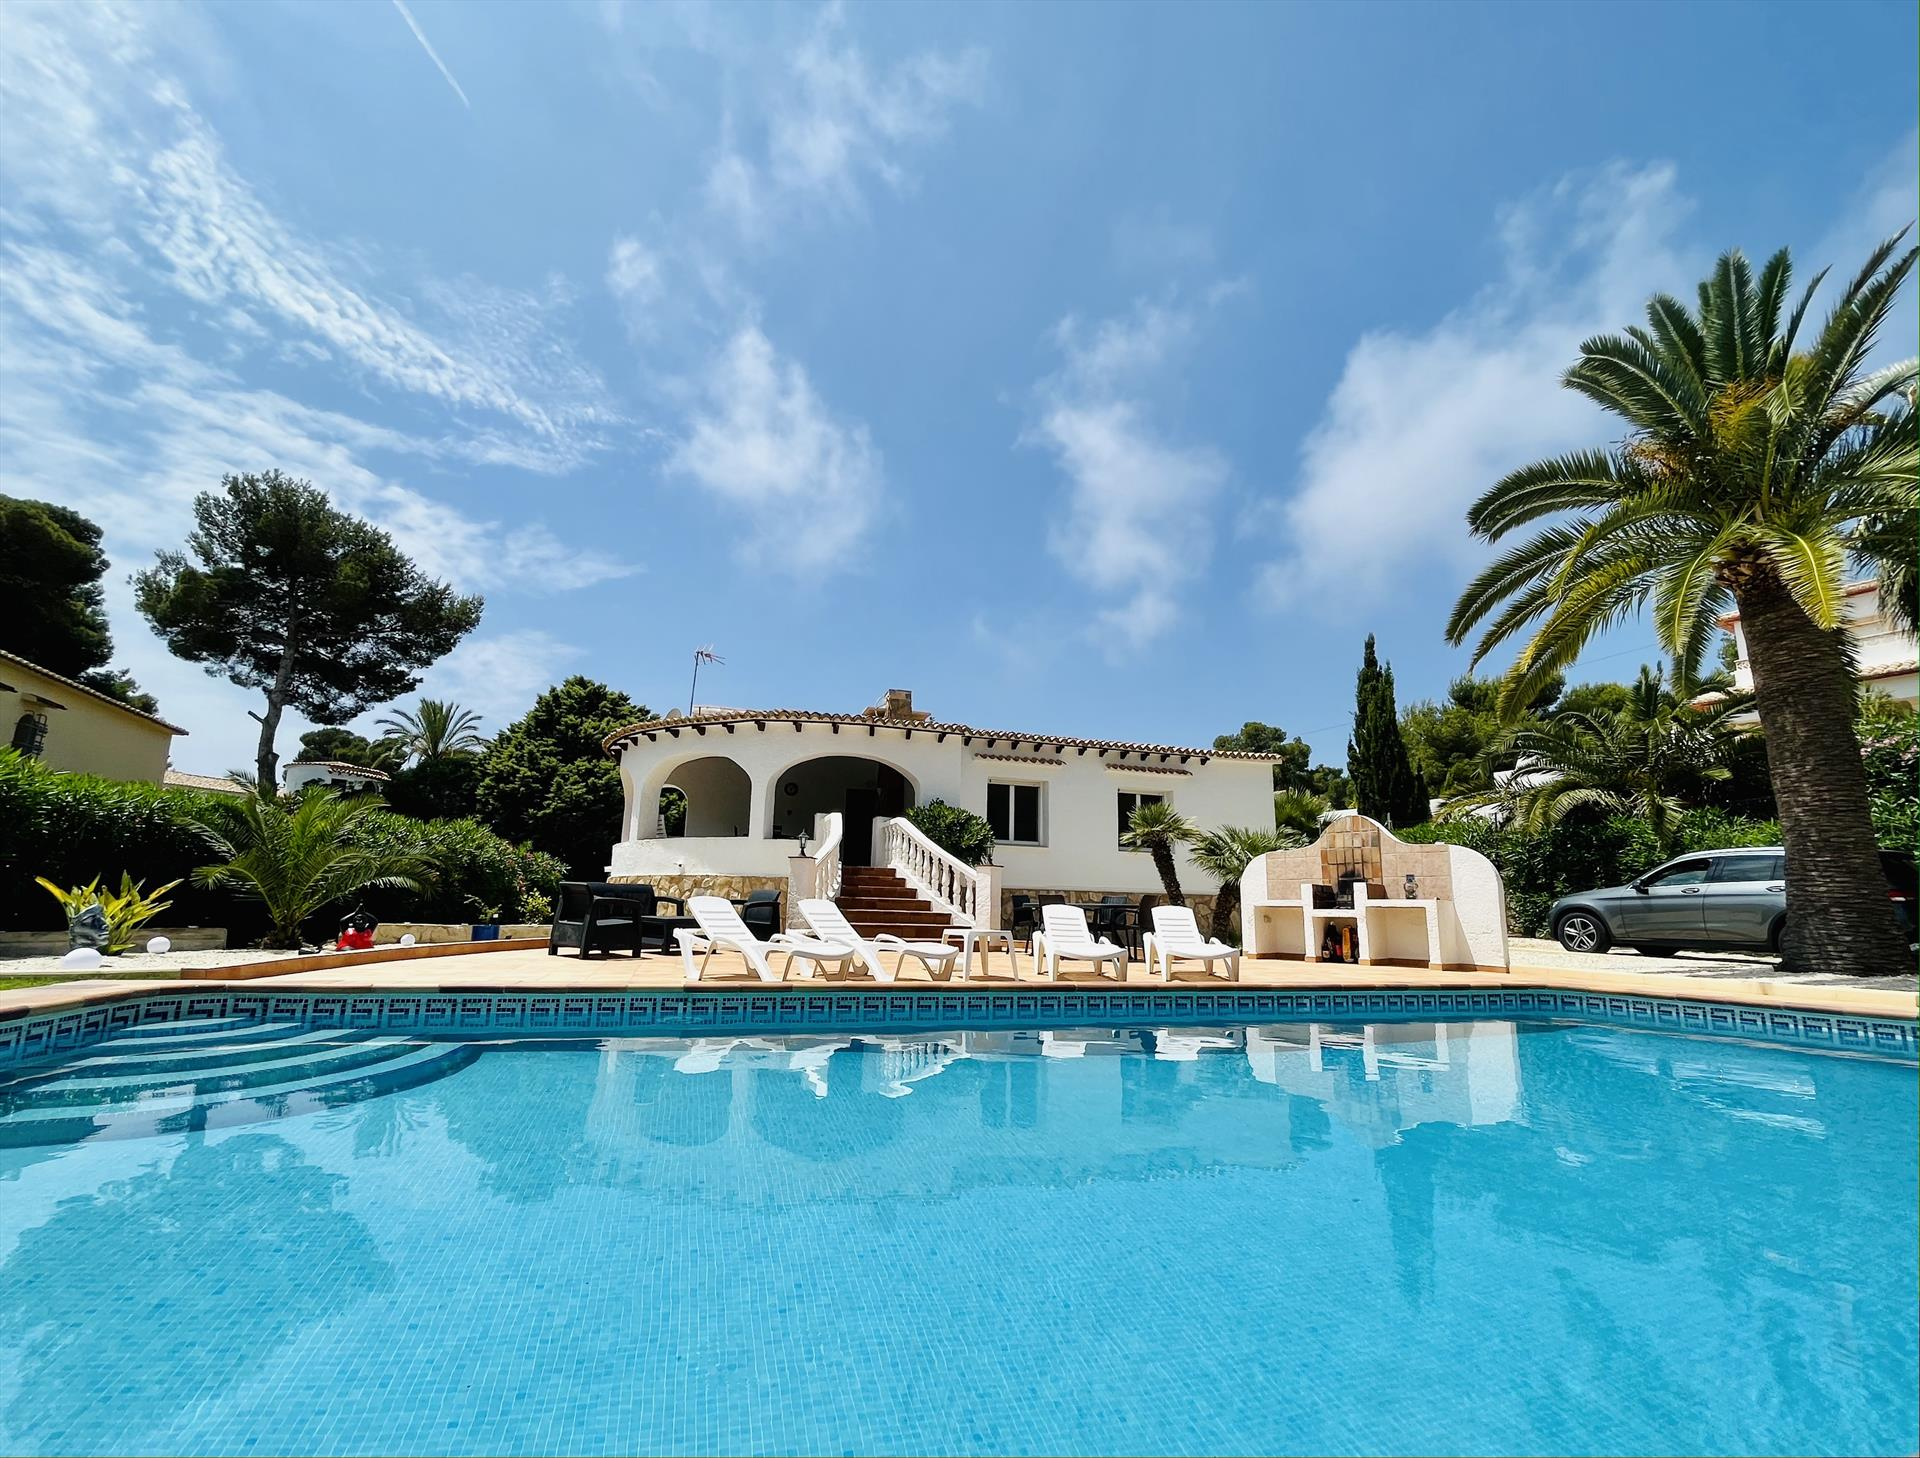 CASA ALBINONI,Wonderful and comfortable holiday house in Javea, on the Costa Blanca, Spain with private pool for 4 persons. The house.....